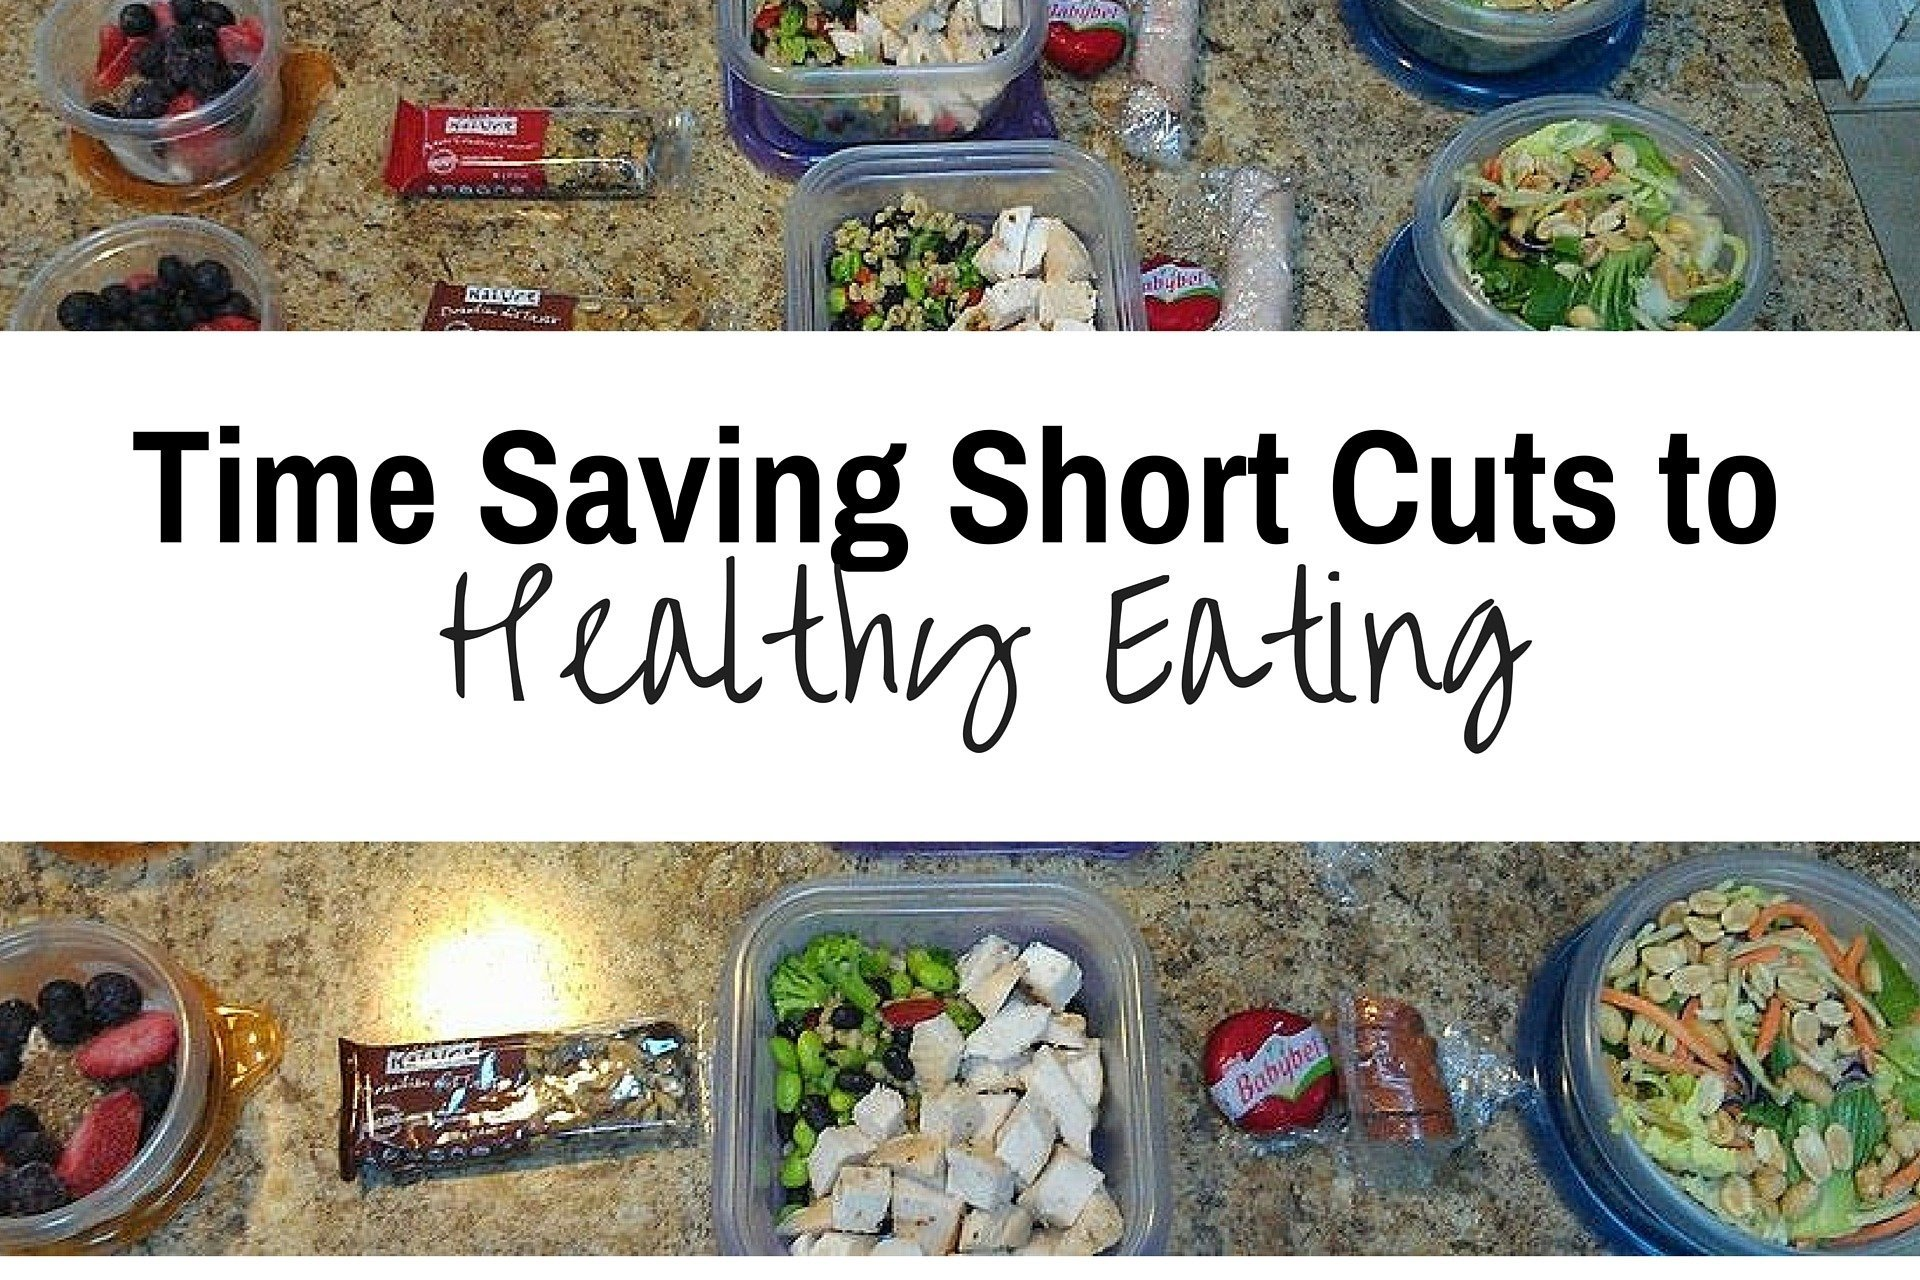 Time Saving Short Cuts to Healthy Eating